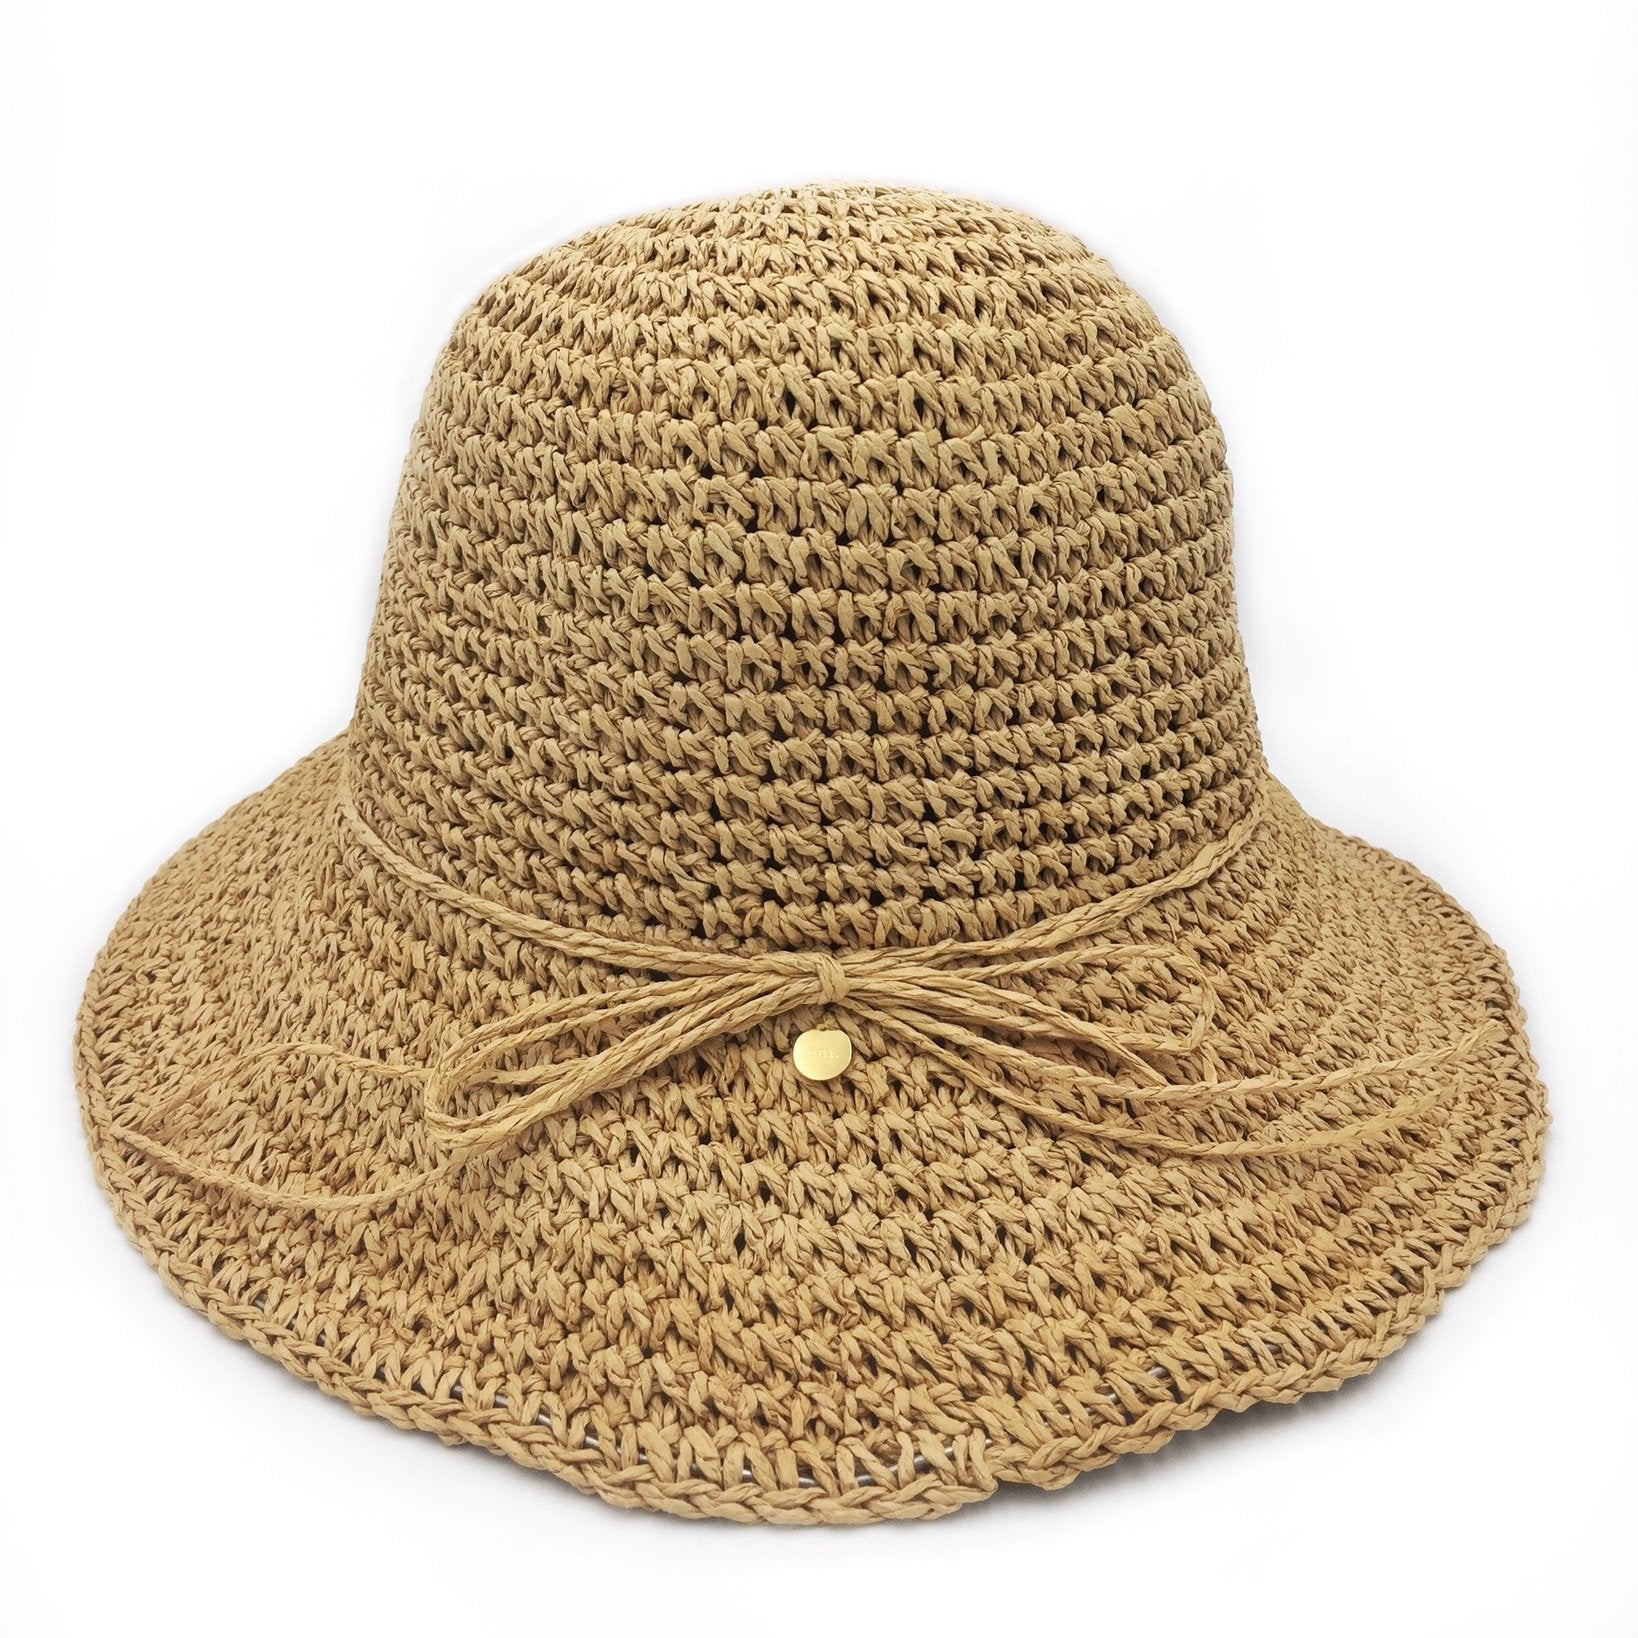 Fini The Label - paper straw hat for ladies and children